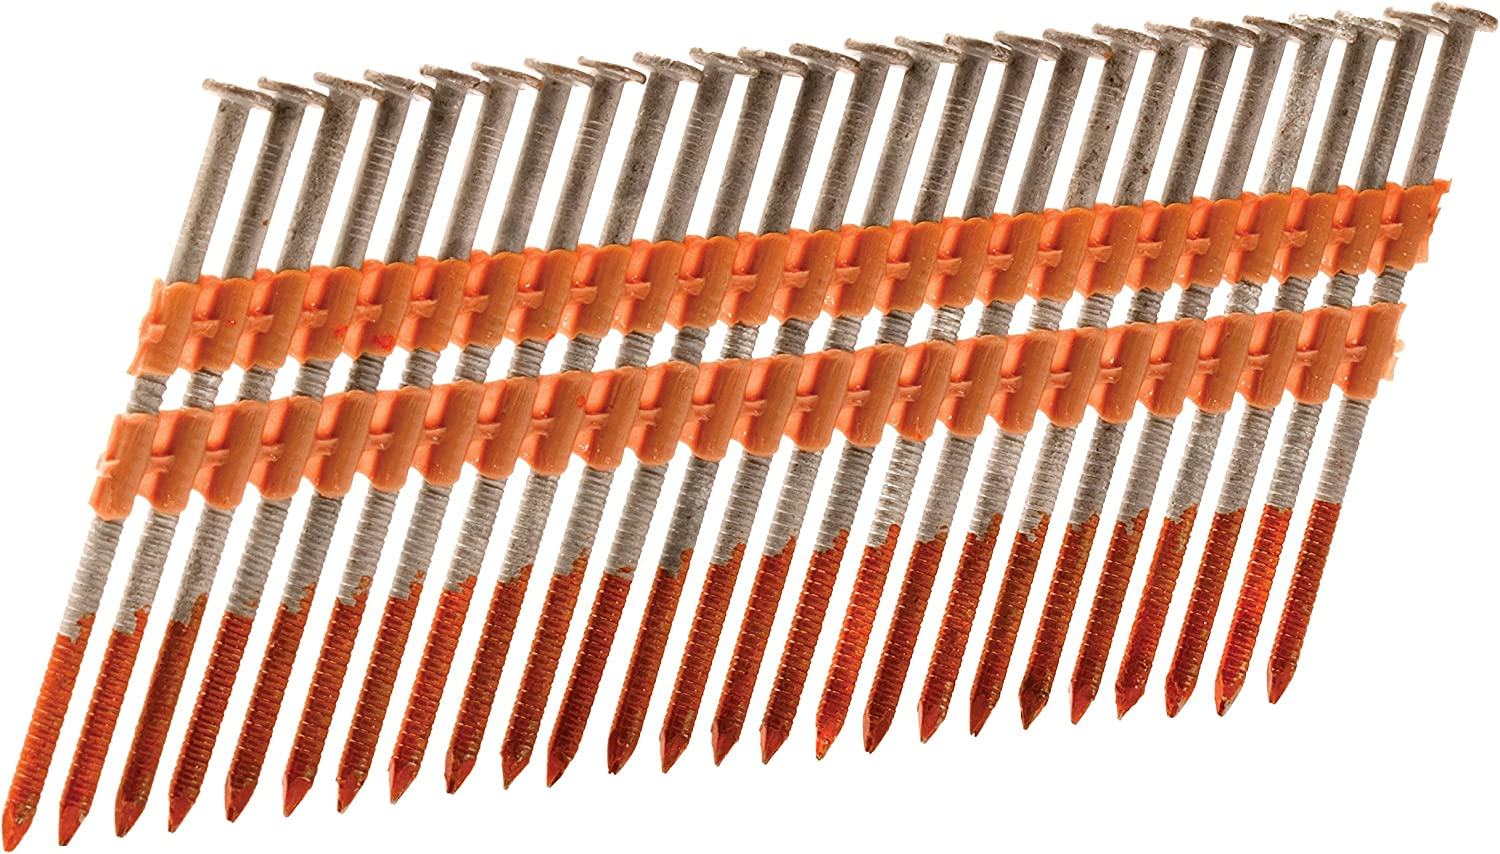 Metabo HPT 3 Inch 21 Degree Pneumatic Nails | 1,000 Count | 2030